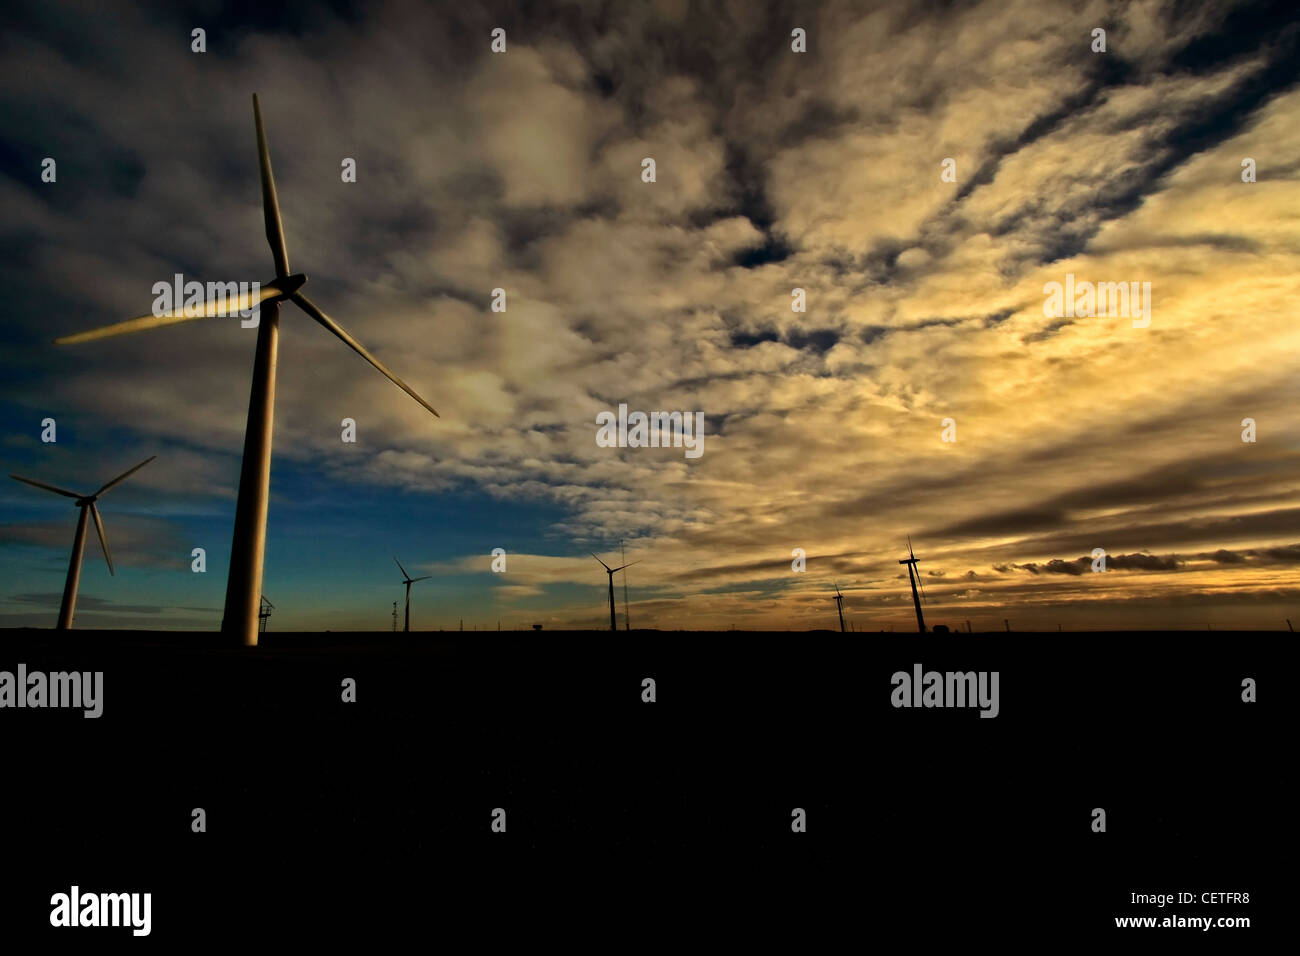 Dusk skies above the turbines at Withernsea Windfarm in East Yorkshire. - Stock Image